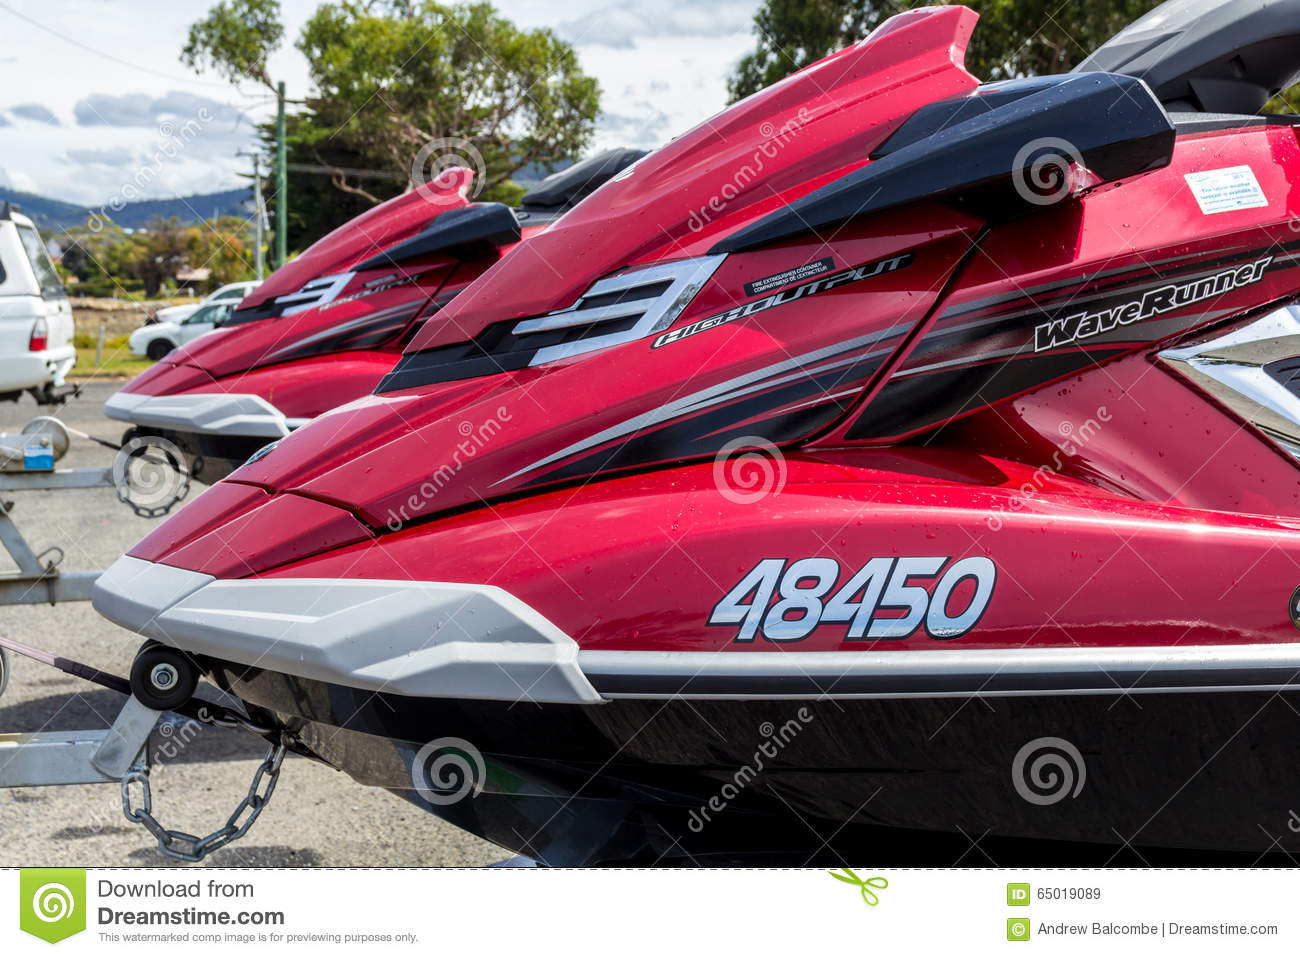 5 Things to Consider When Starting a Jet Ski Rental Business